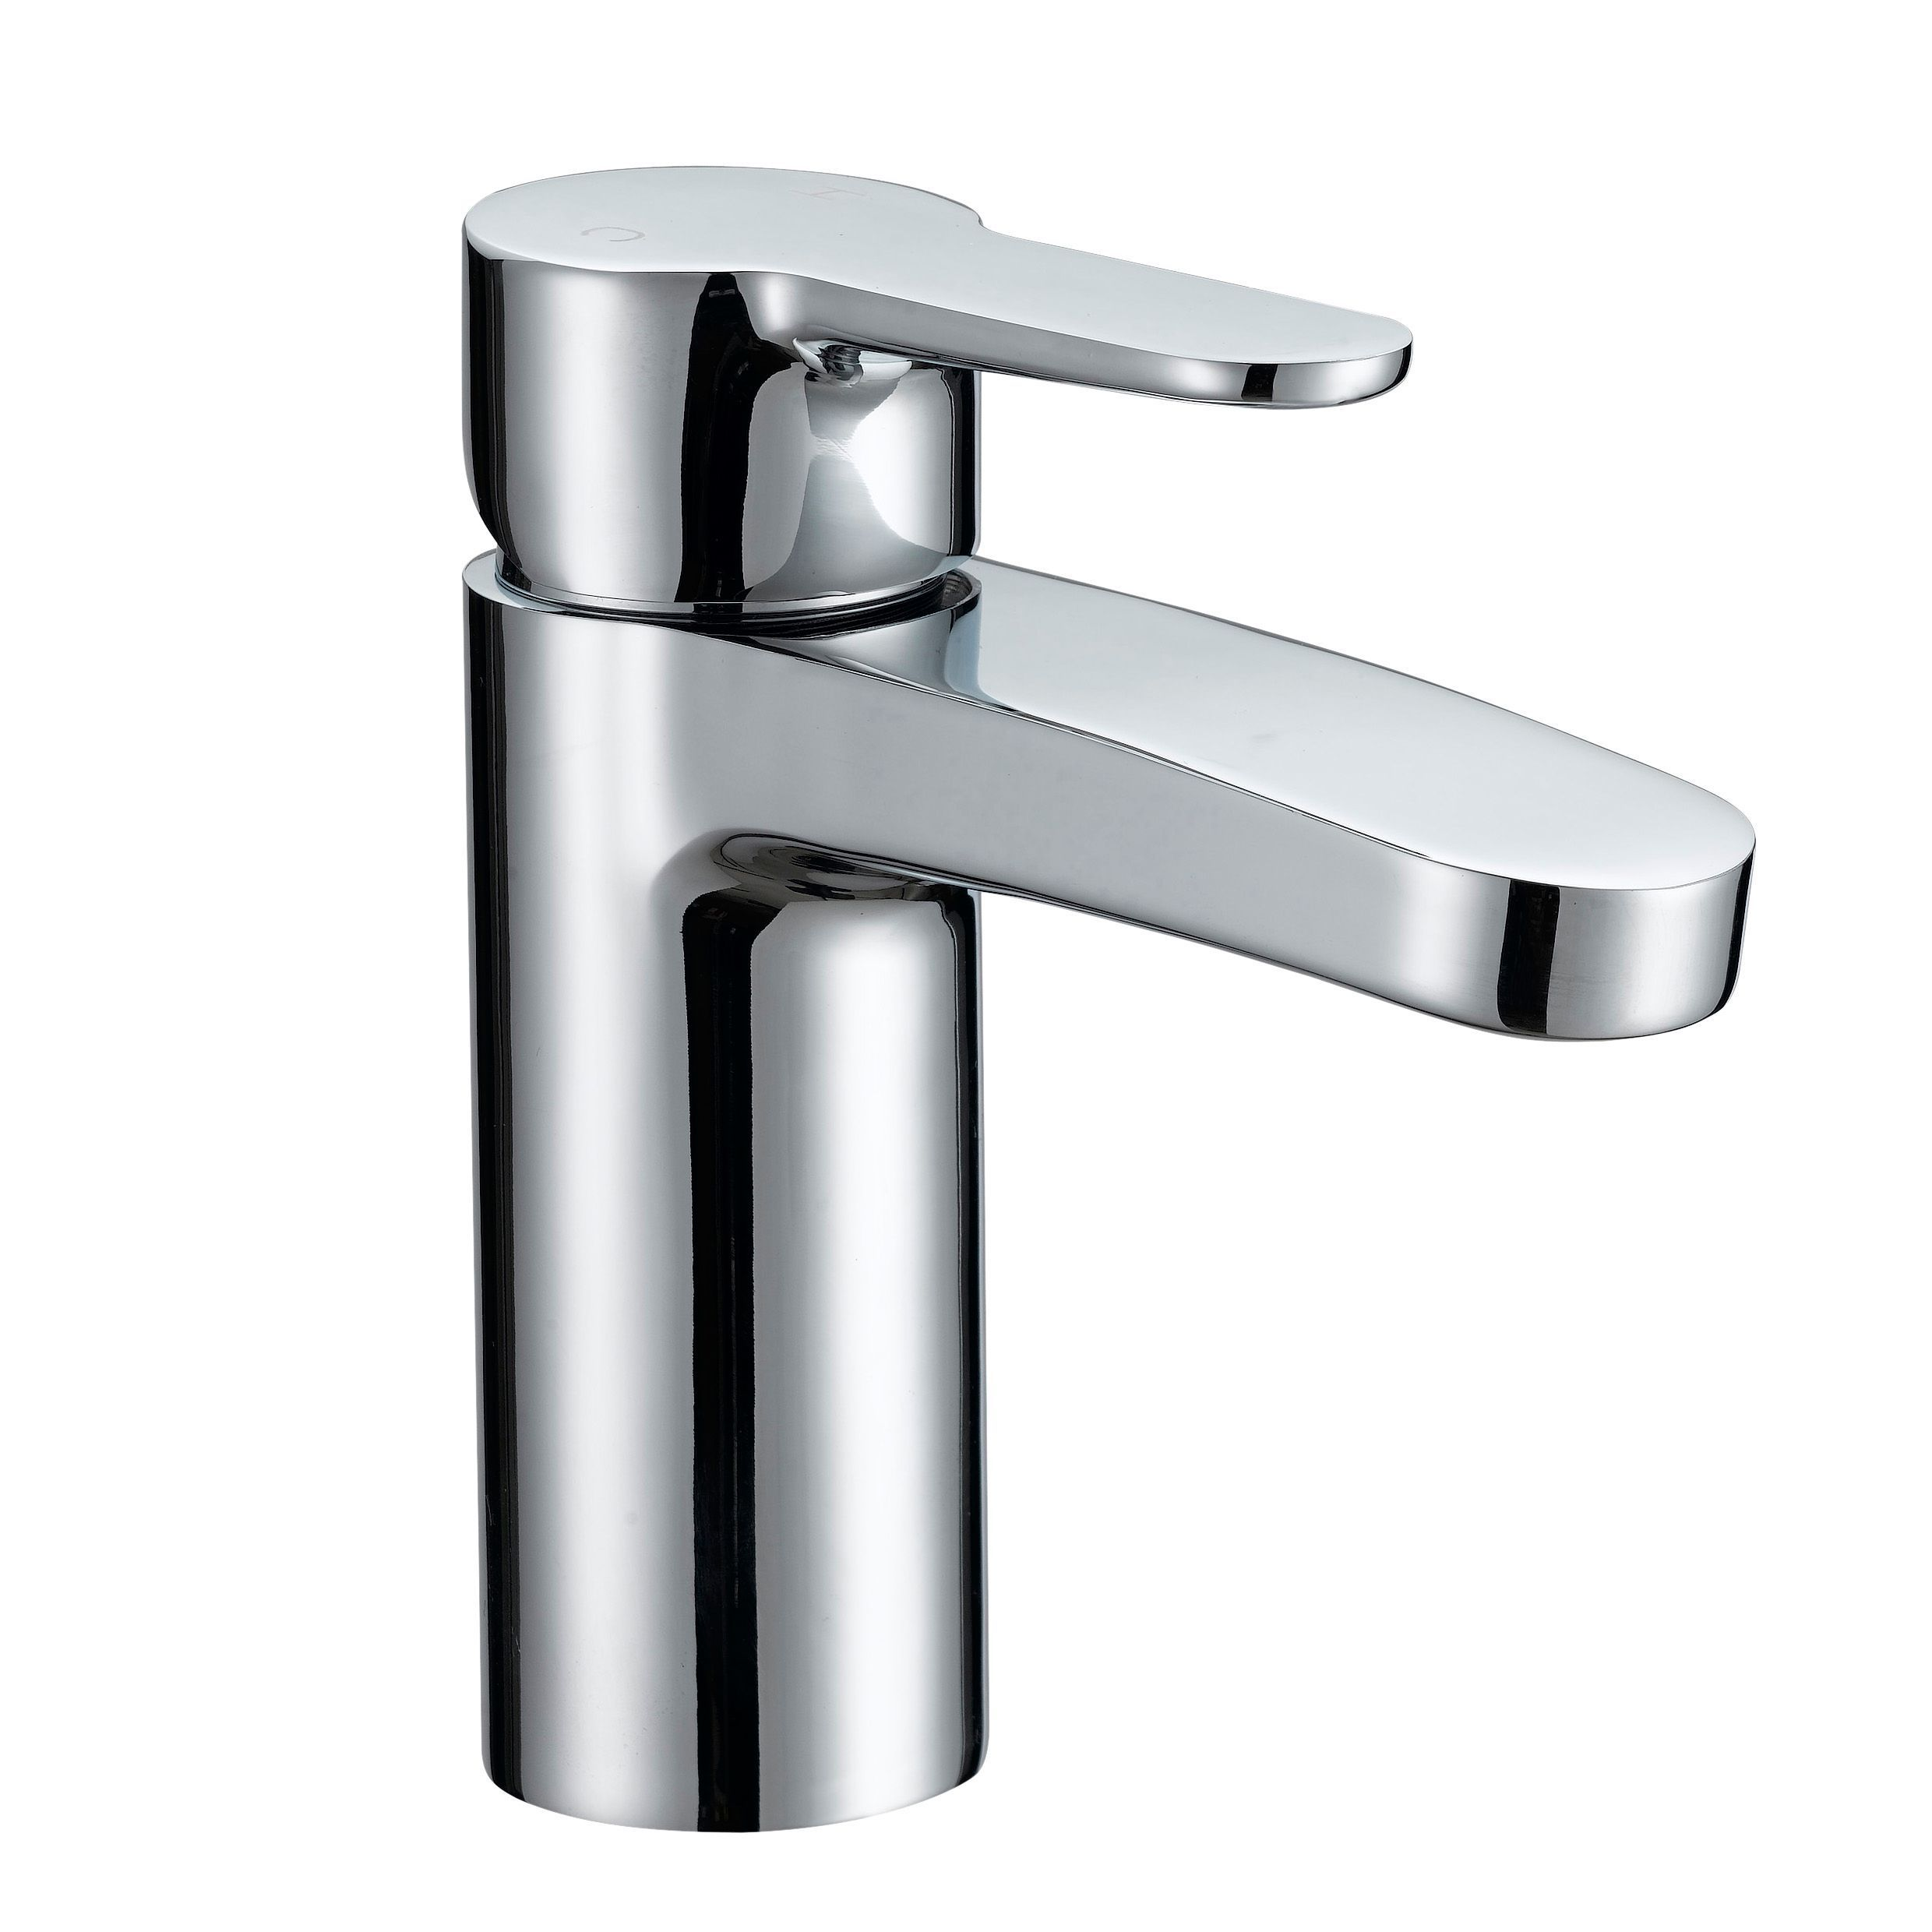 Cooke & Lewis Calista 1 Lever Basin Mixer Tap ...